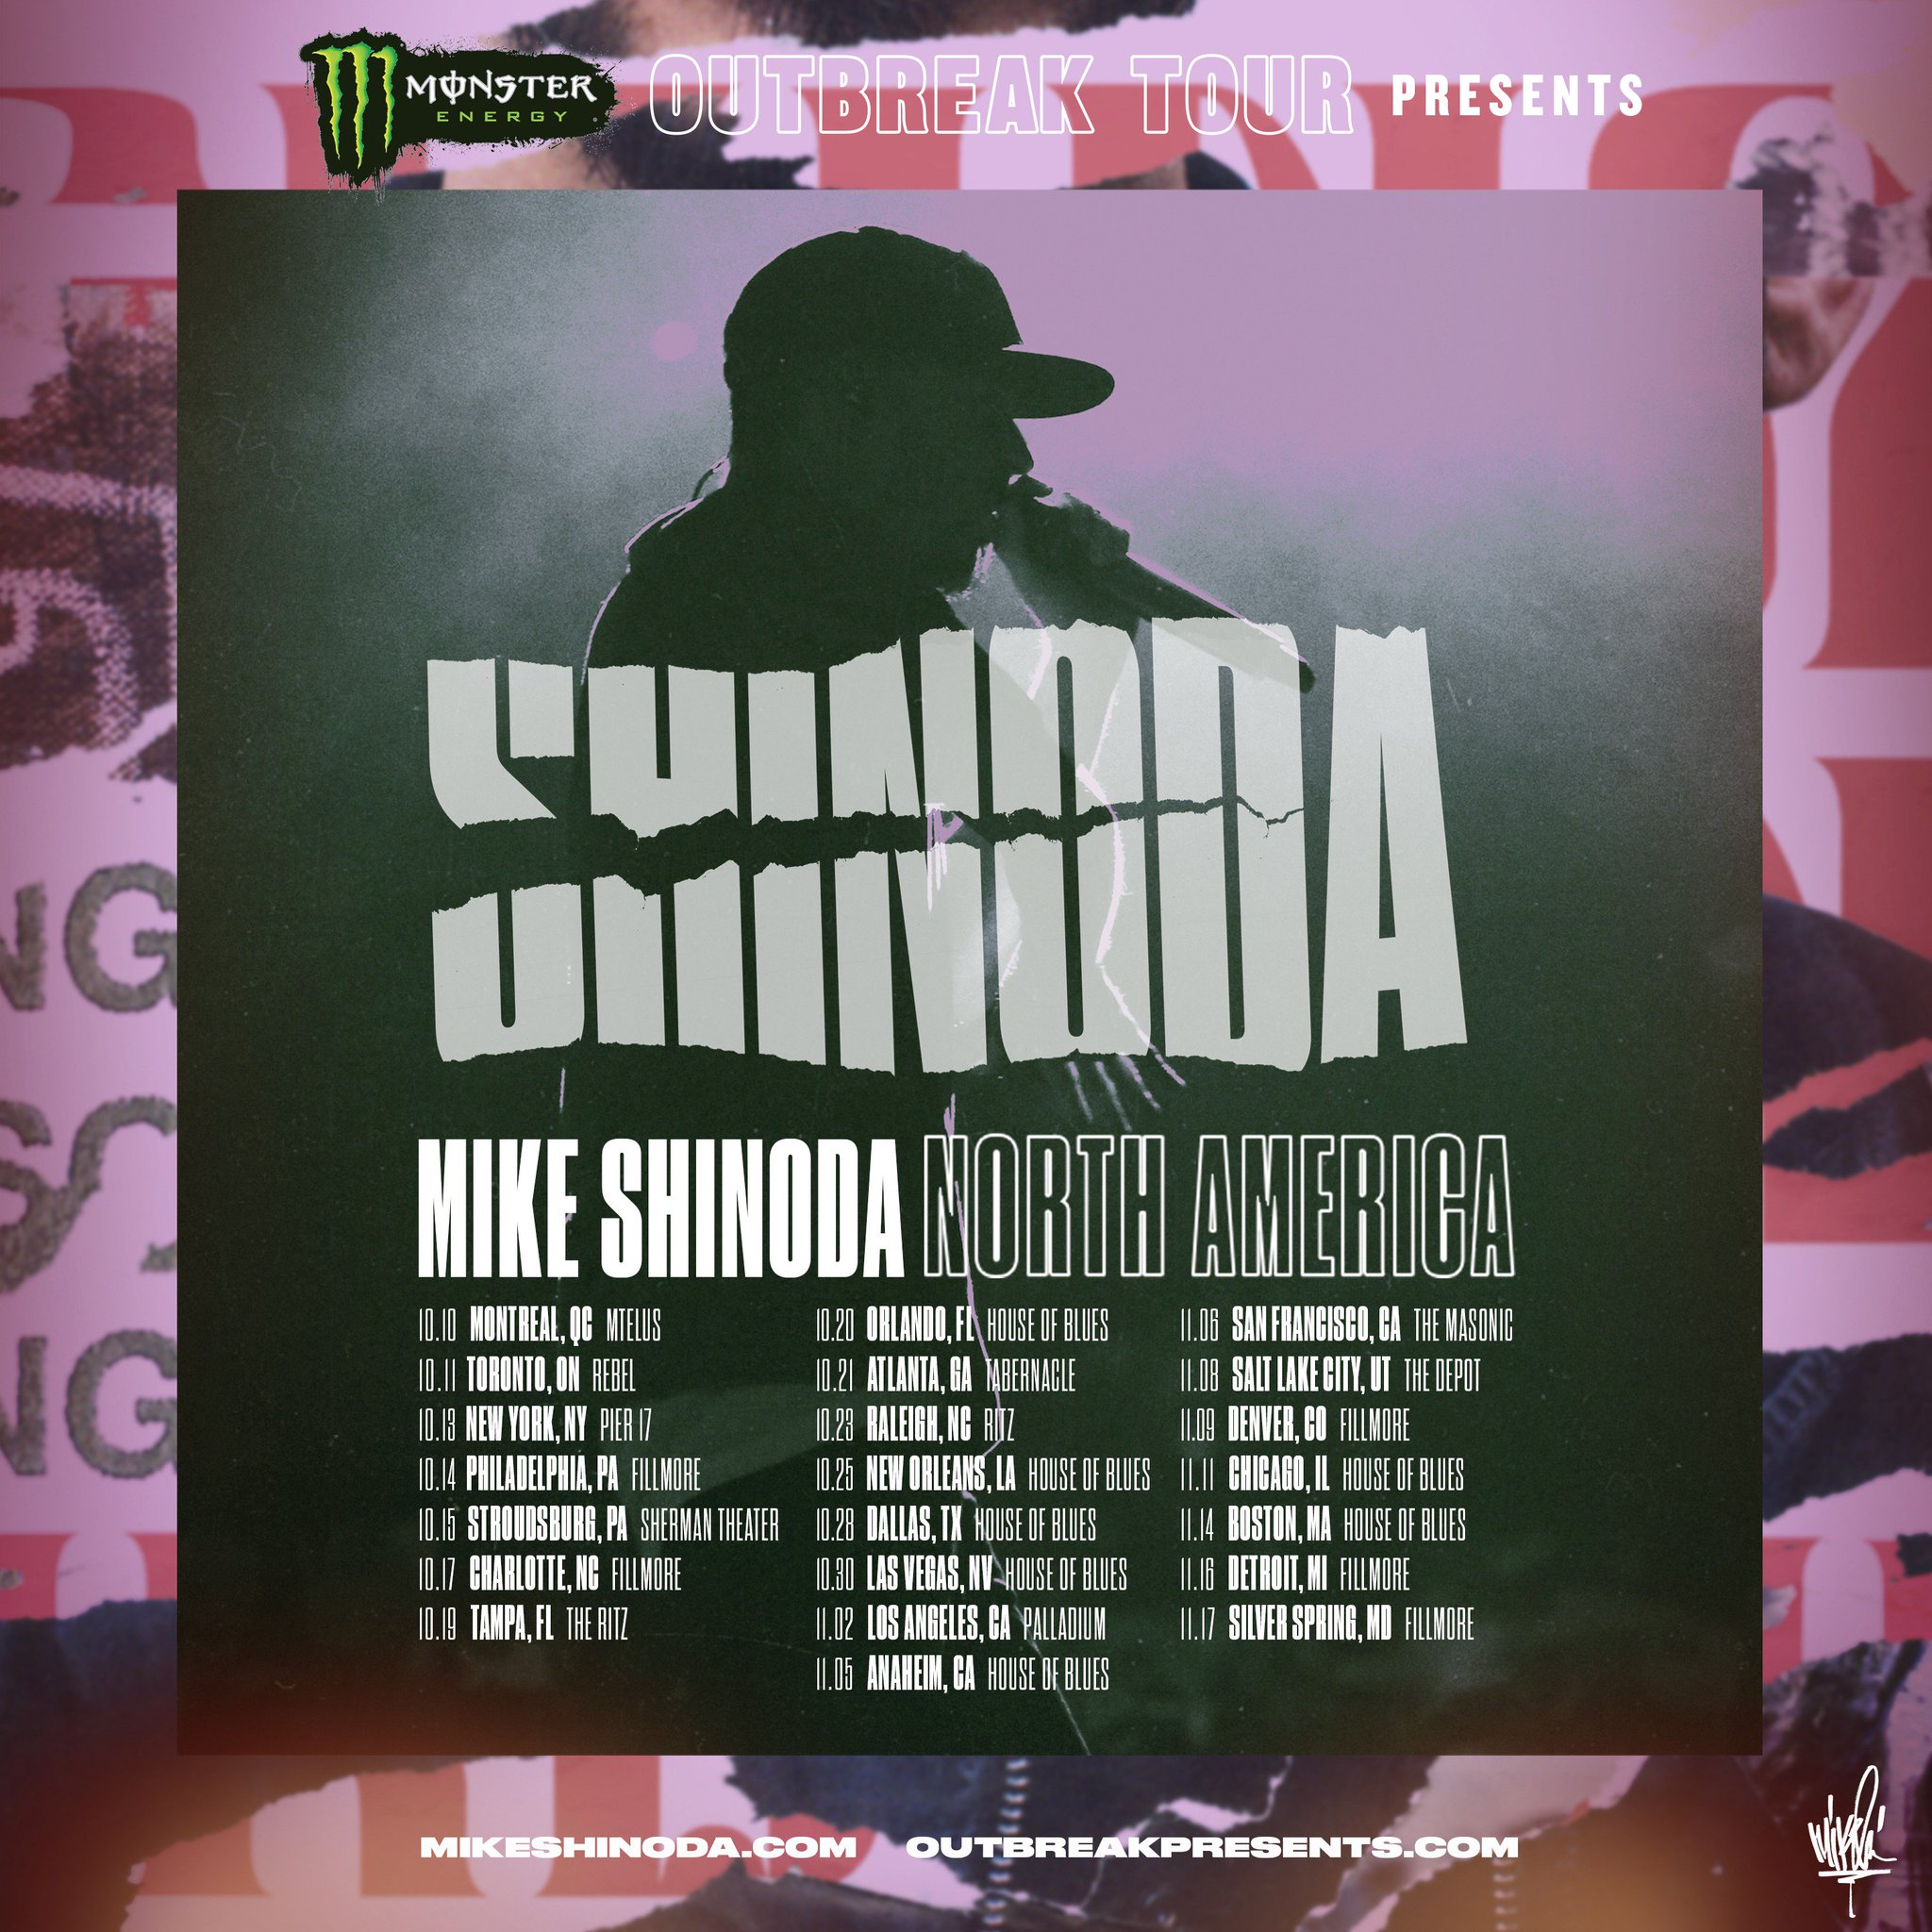 /// mid west Monster Energy #OutbreakTour   Tickets on sale now: https://t.co/ZNuwy5udqk https://t.co/szDocEGqNS